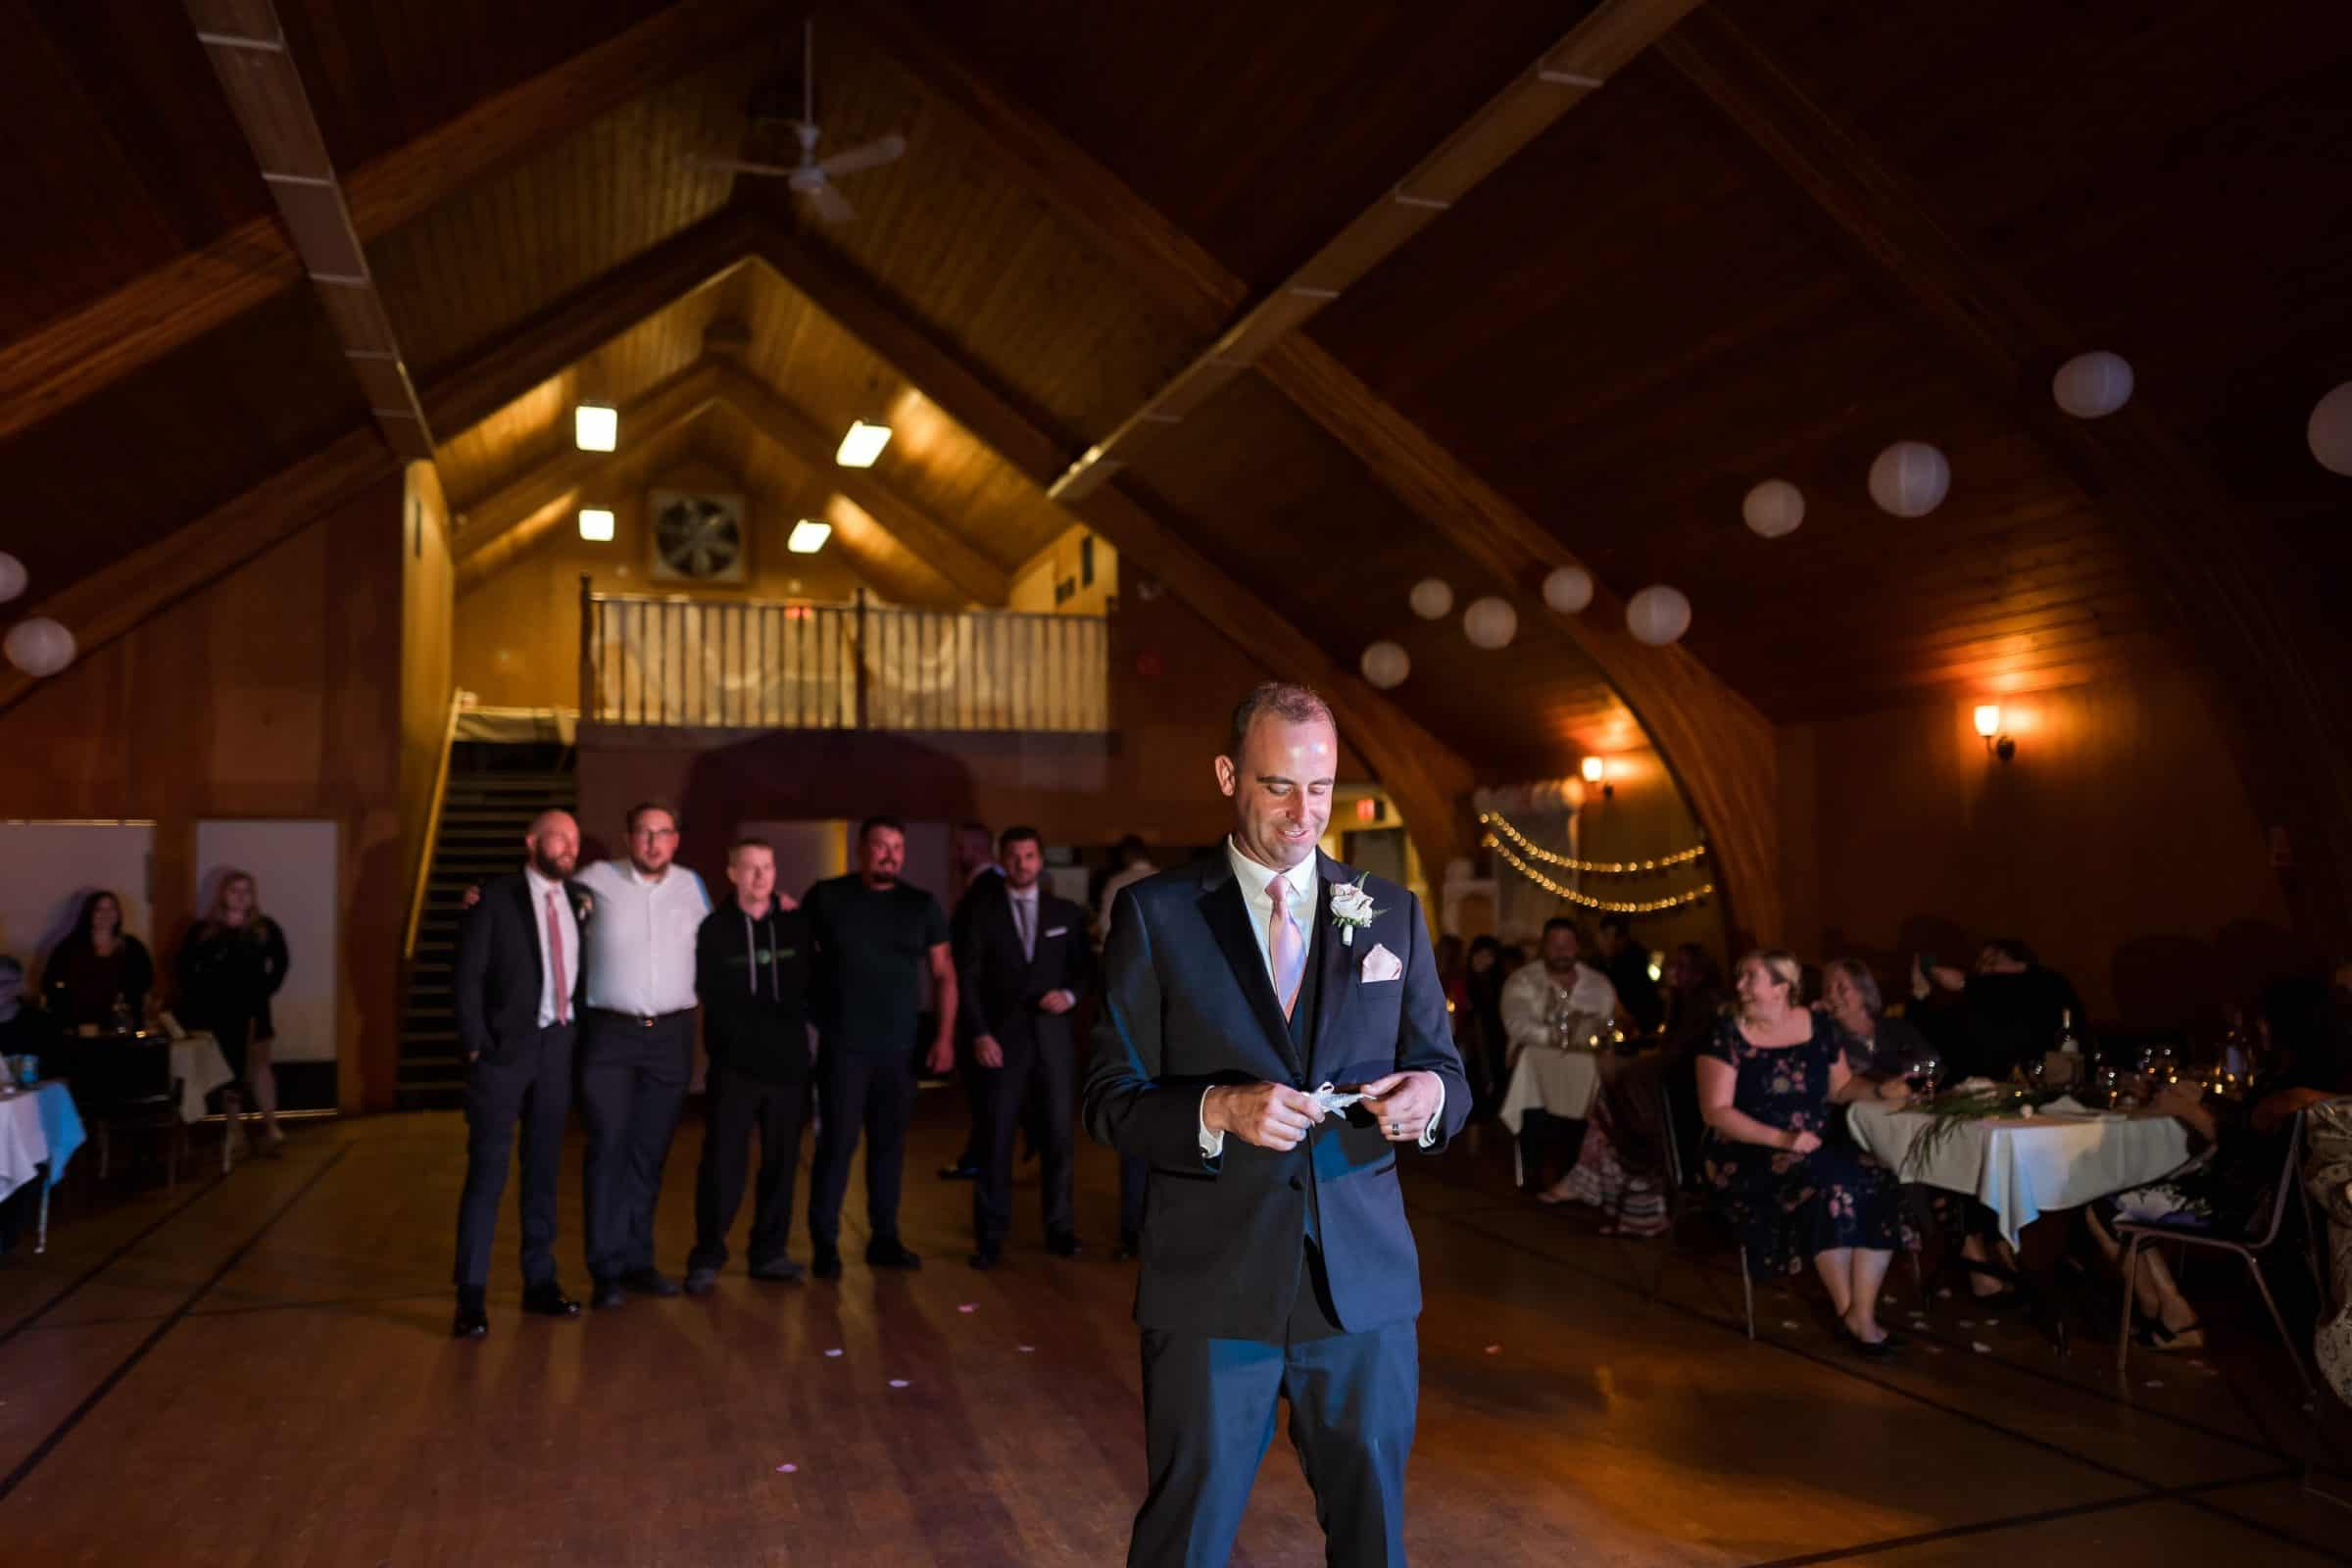 groom getting ready to throw garter with men in the background